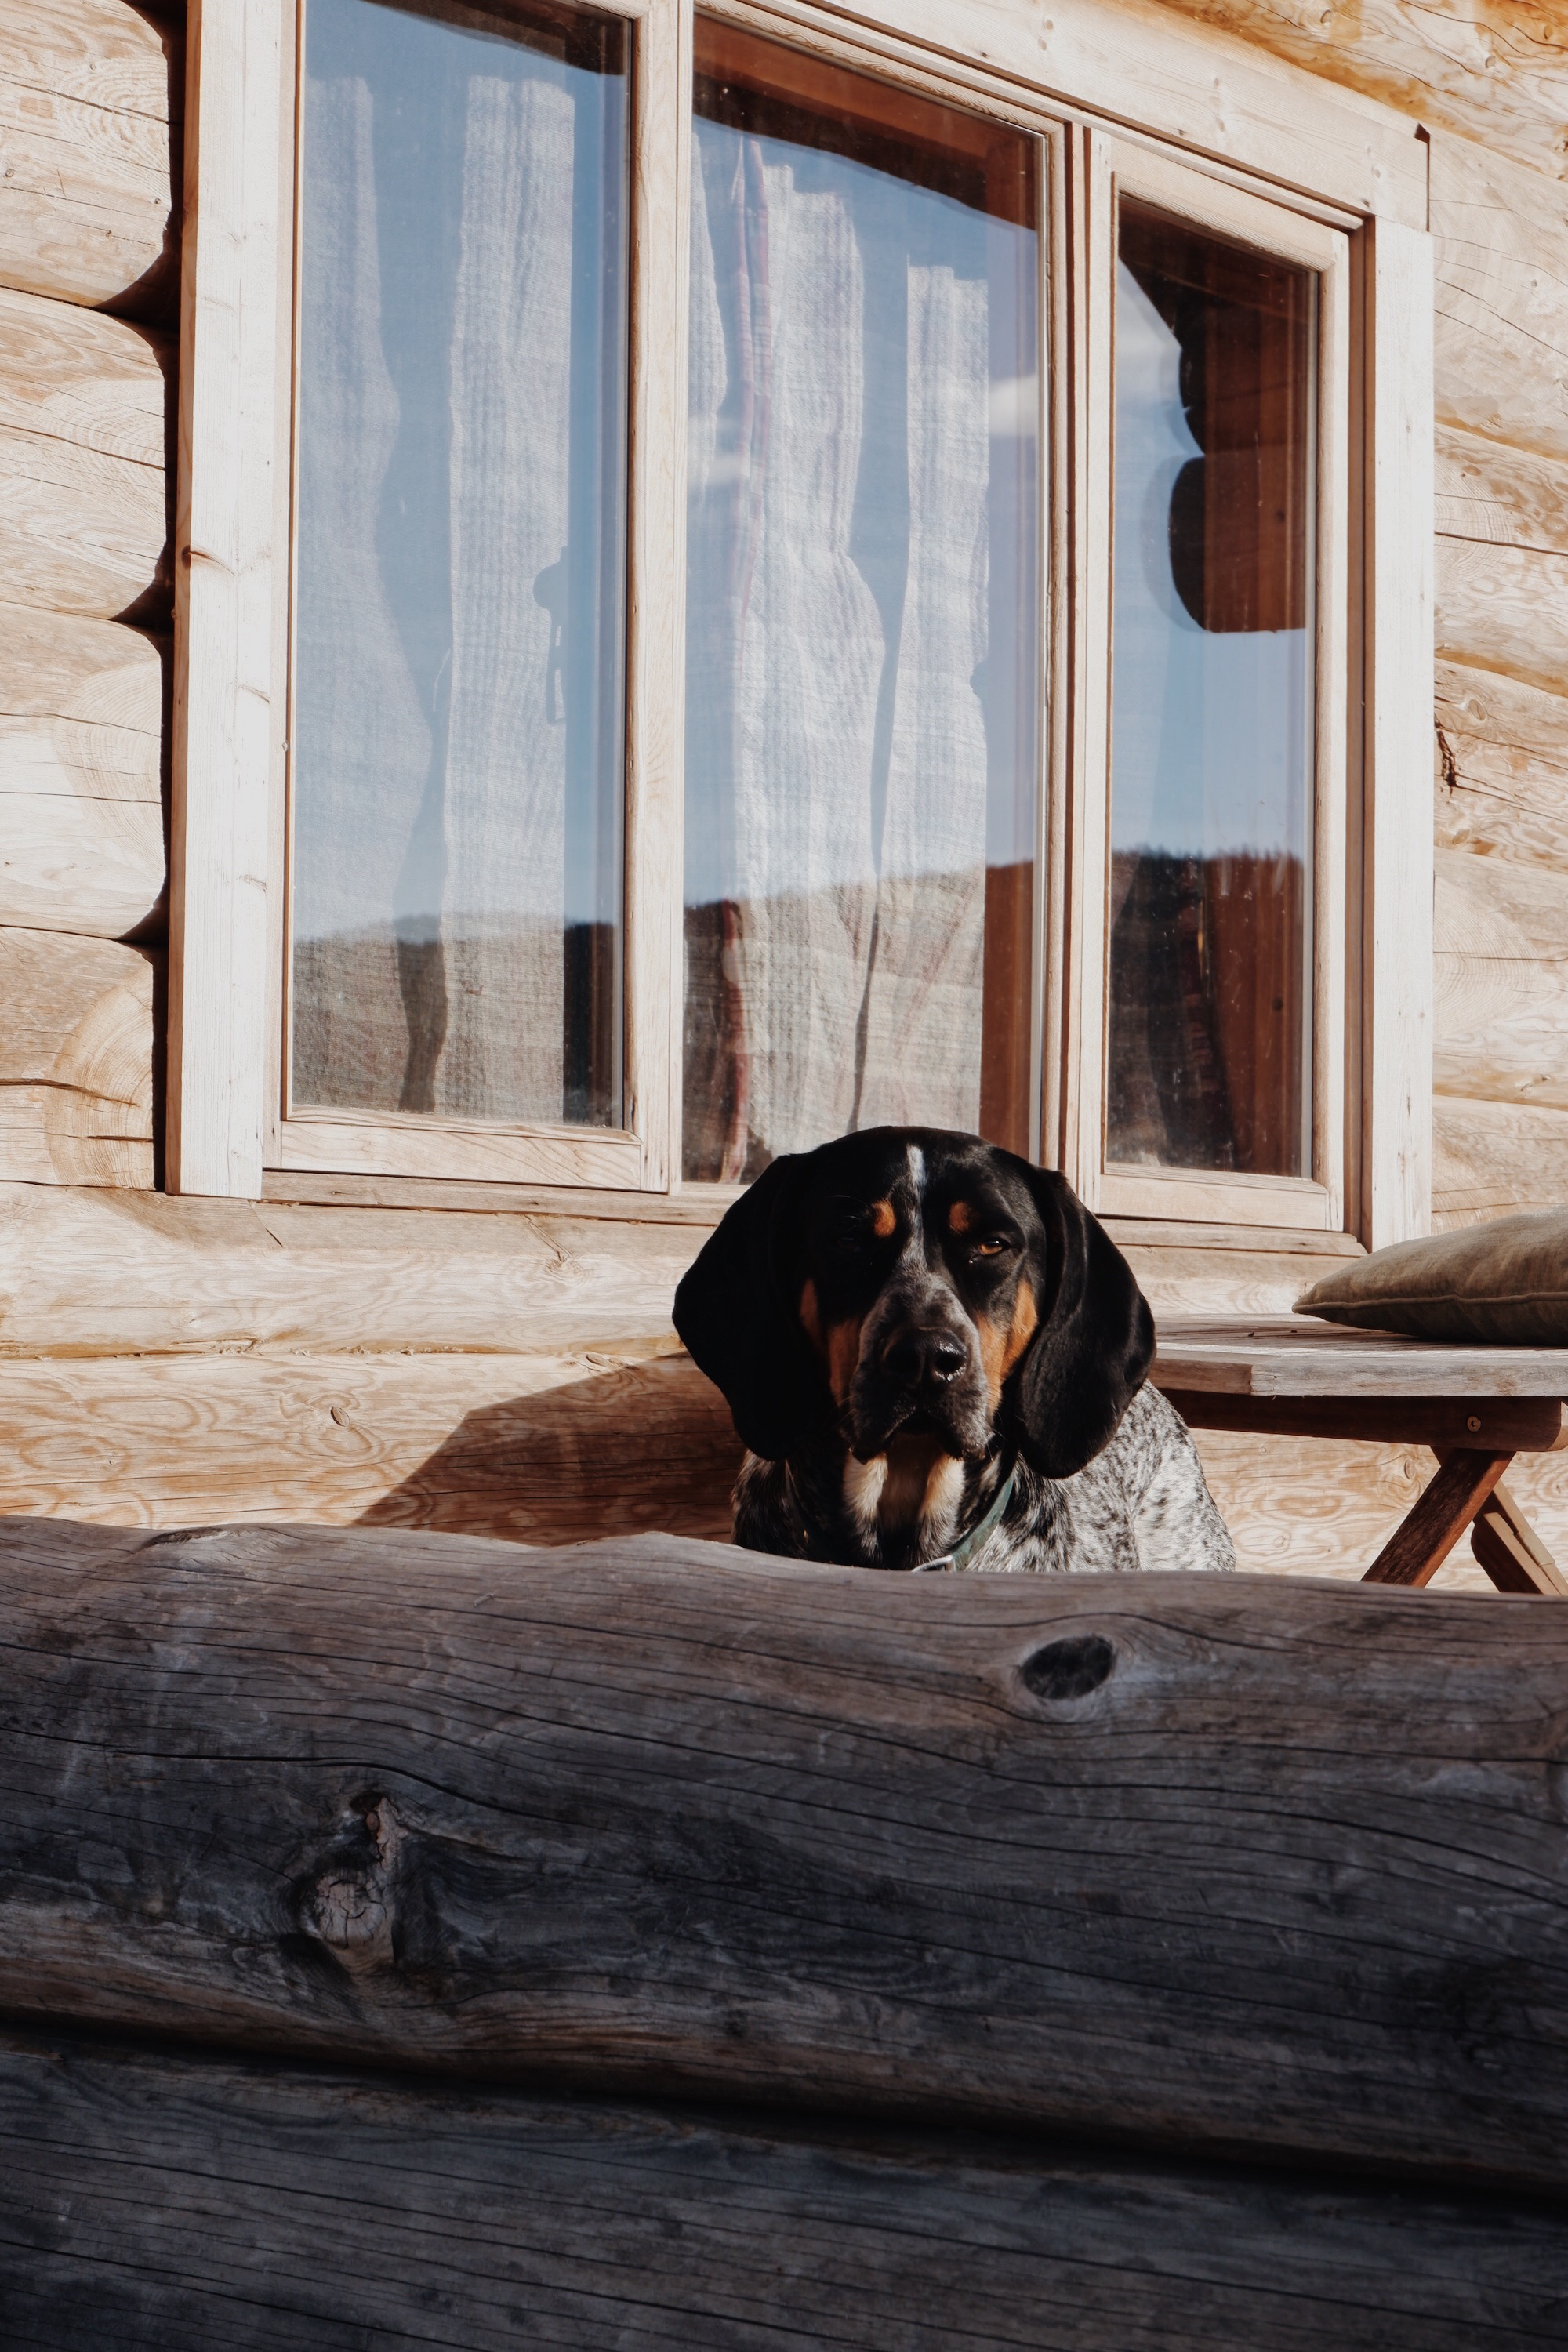 Beau, resident ranch dog with the sweetest heart.